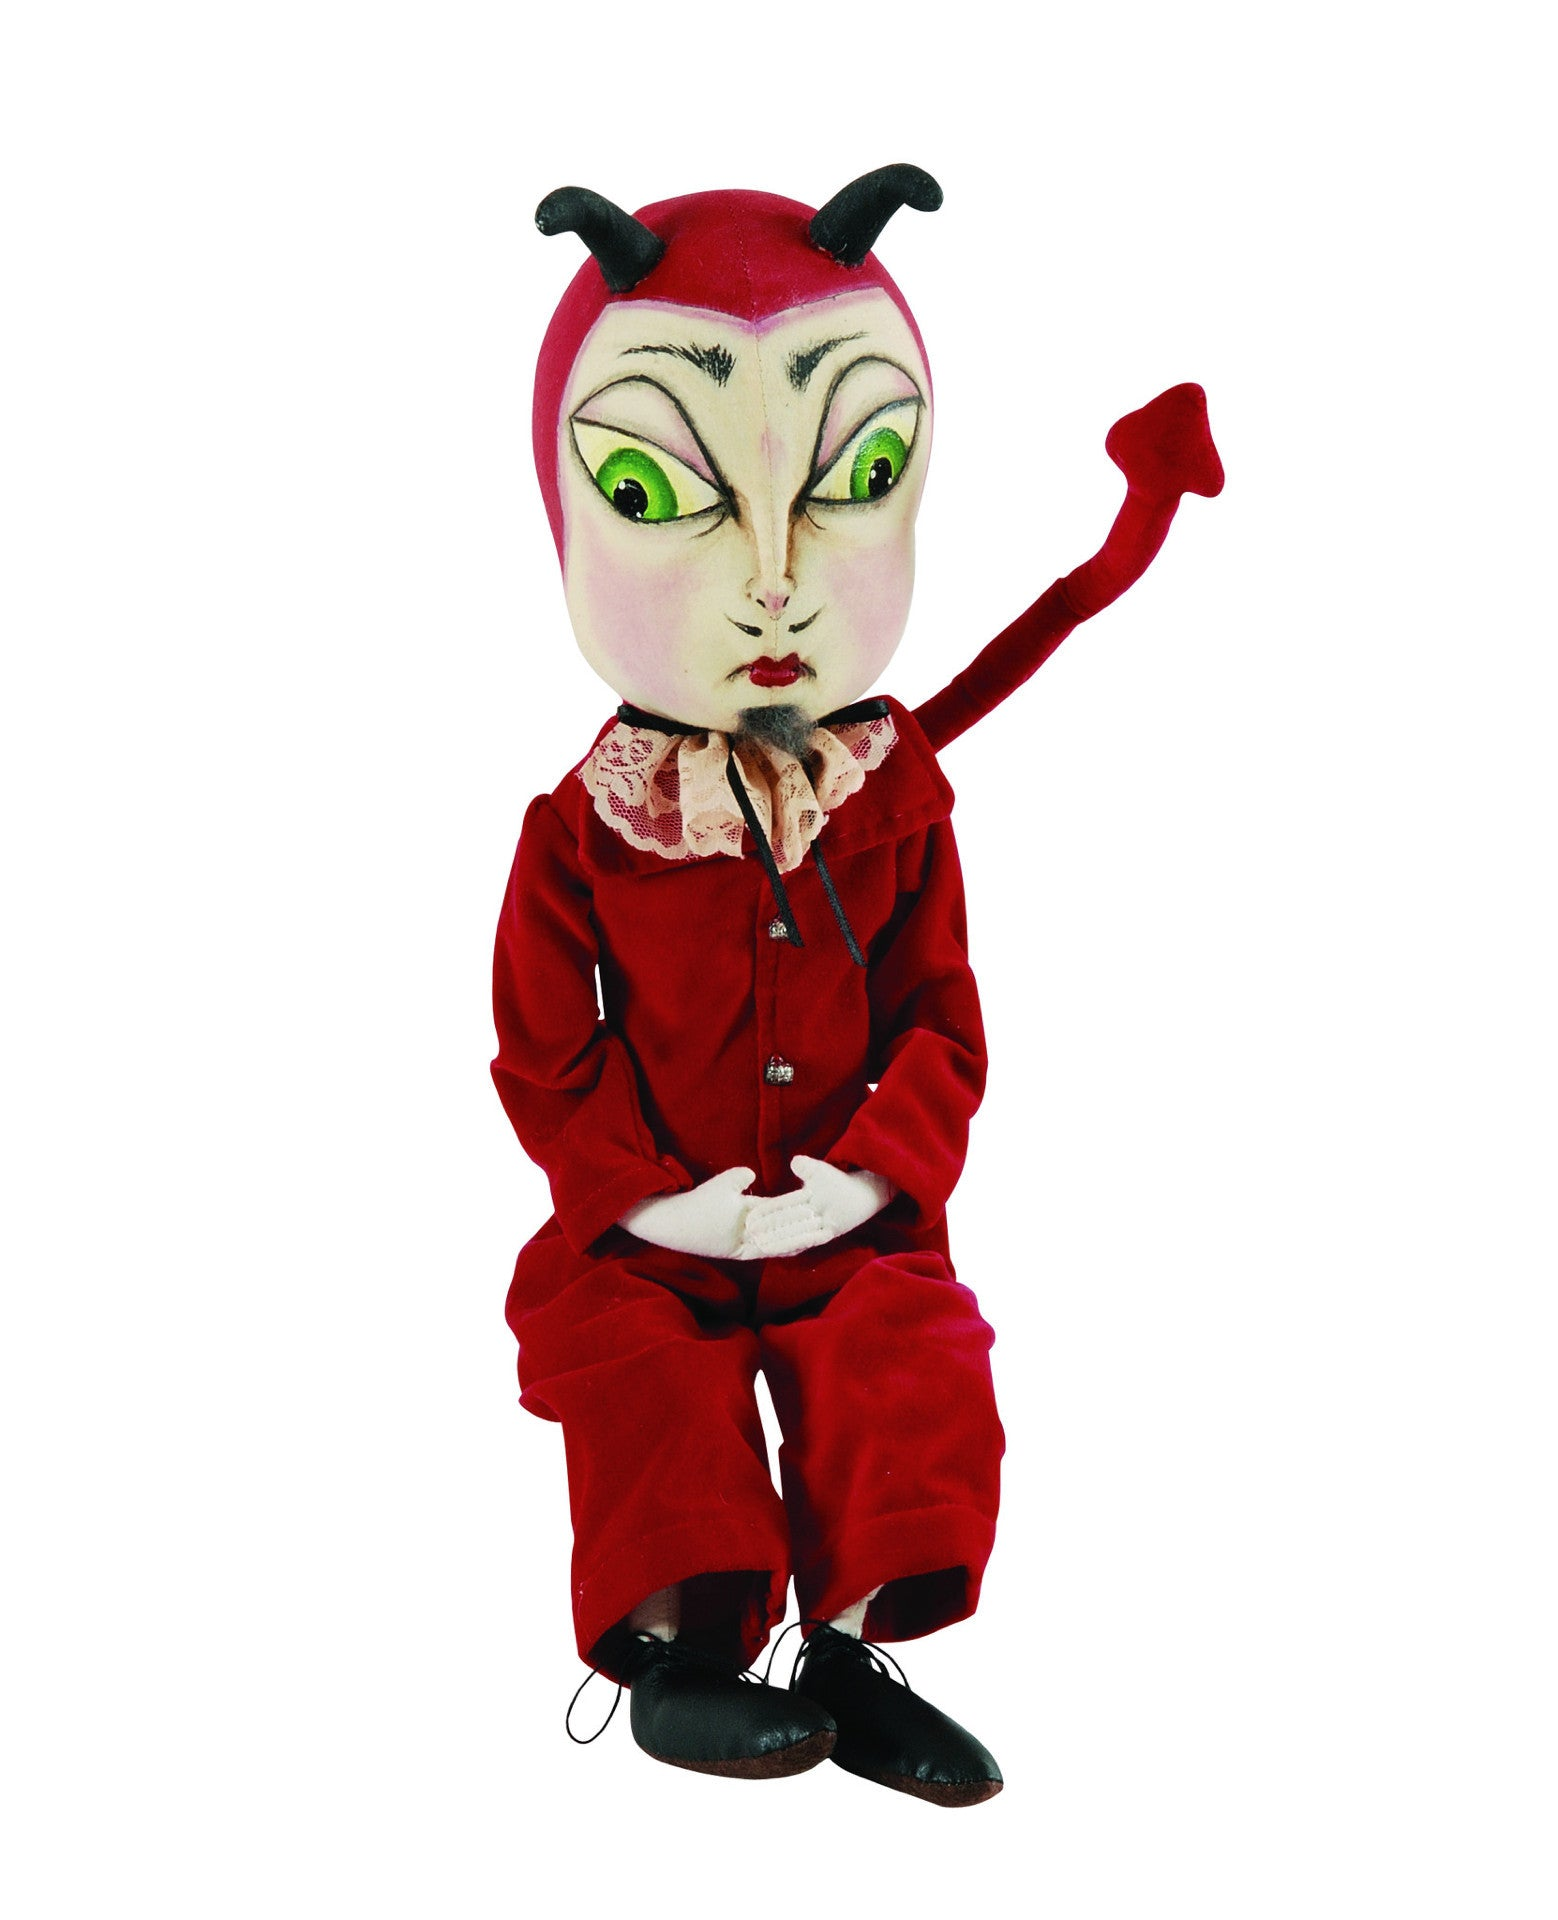 Vance Devil Cloth Halloween Doll by Joe Spencer